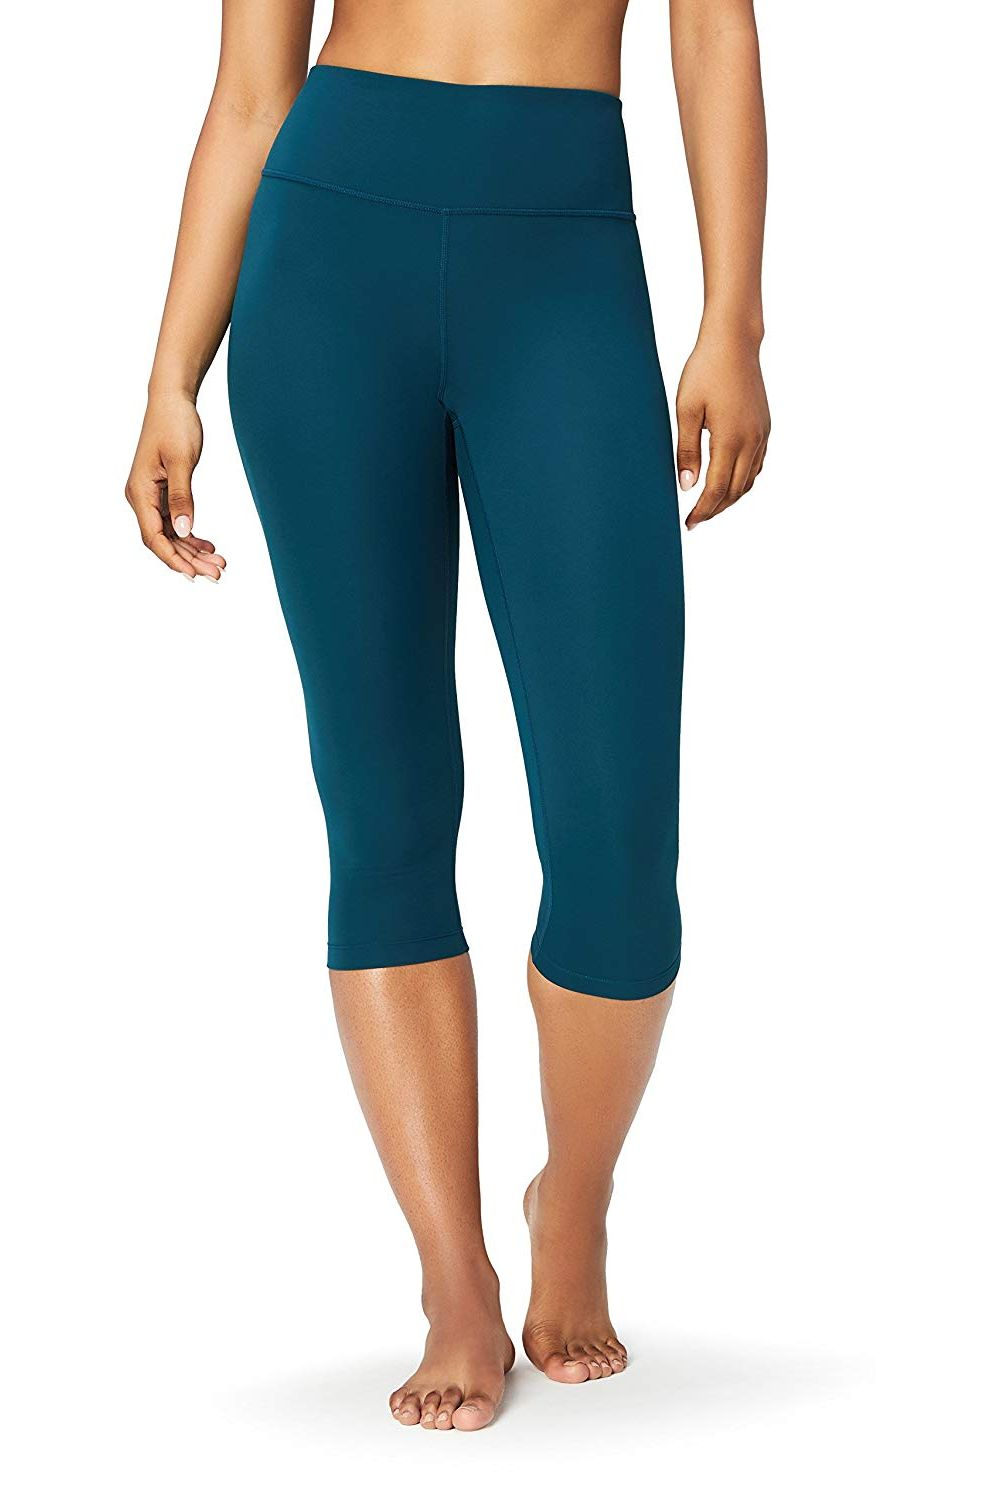 Amazon Brand Core 10 Women's 'Spectrum' Yoga High Waist Capri Legging